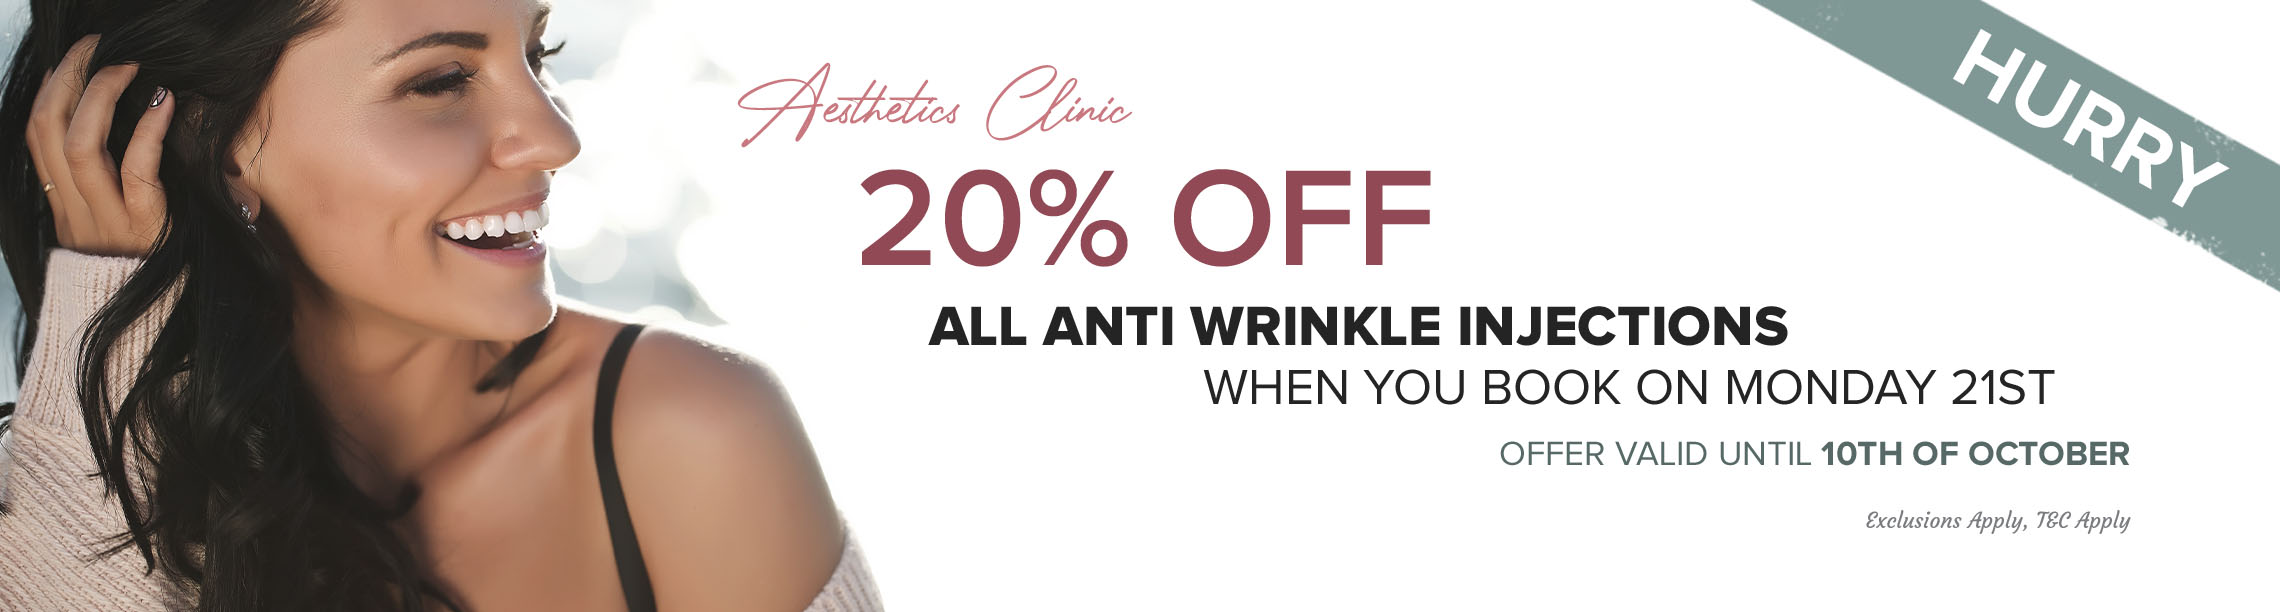 AntiWrinkleInjections